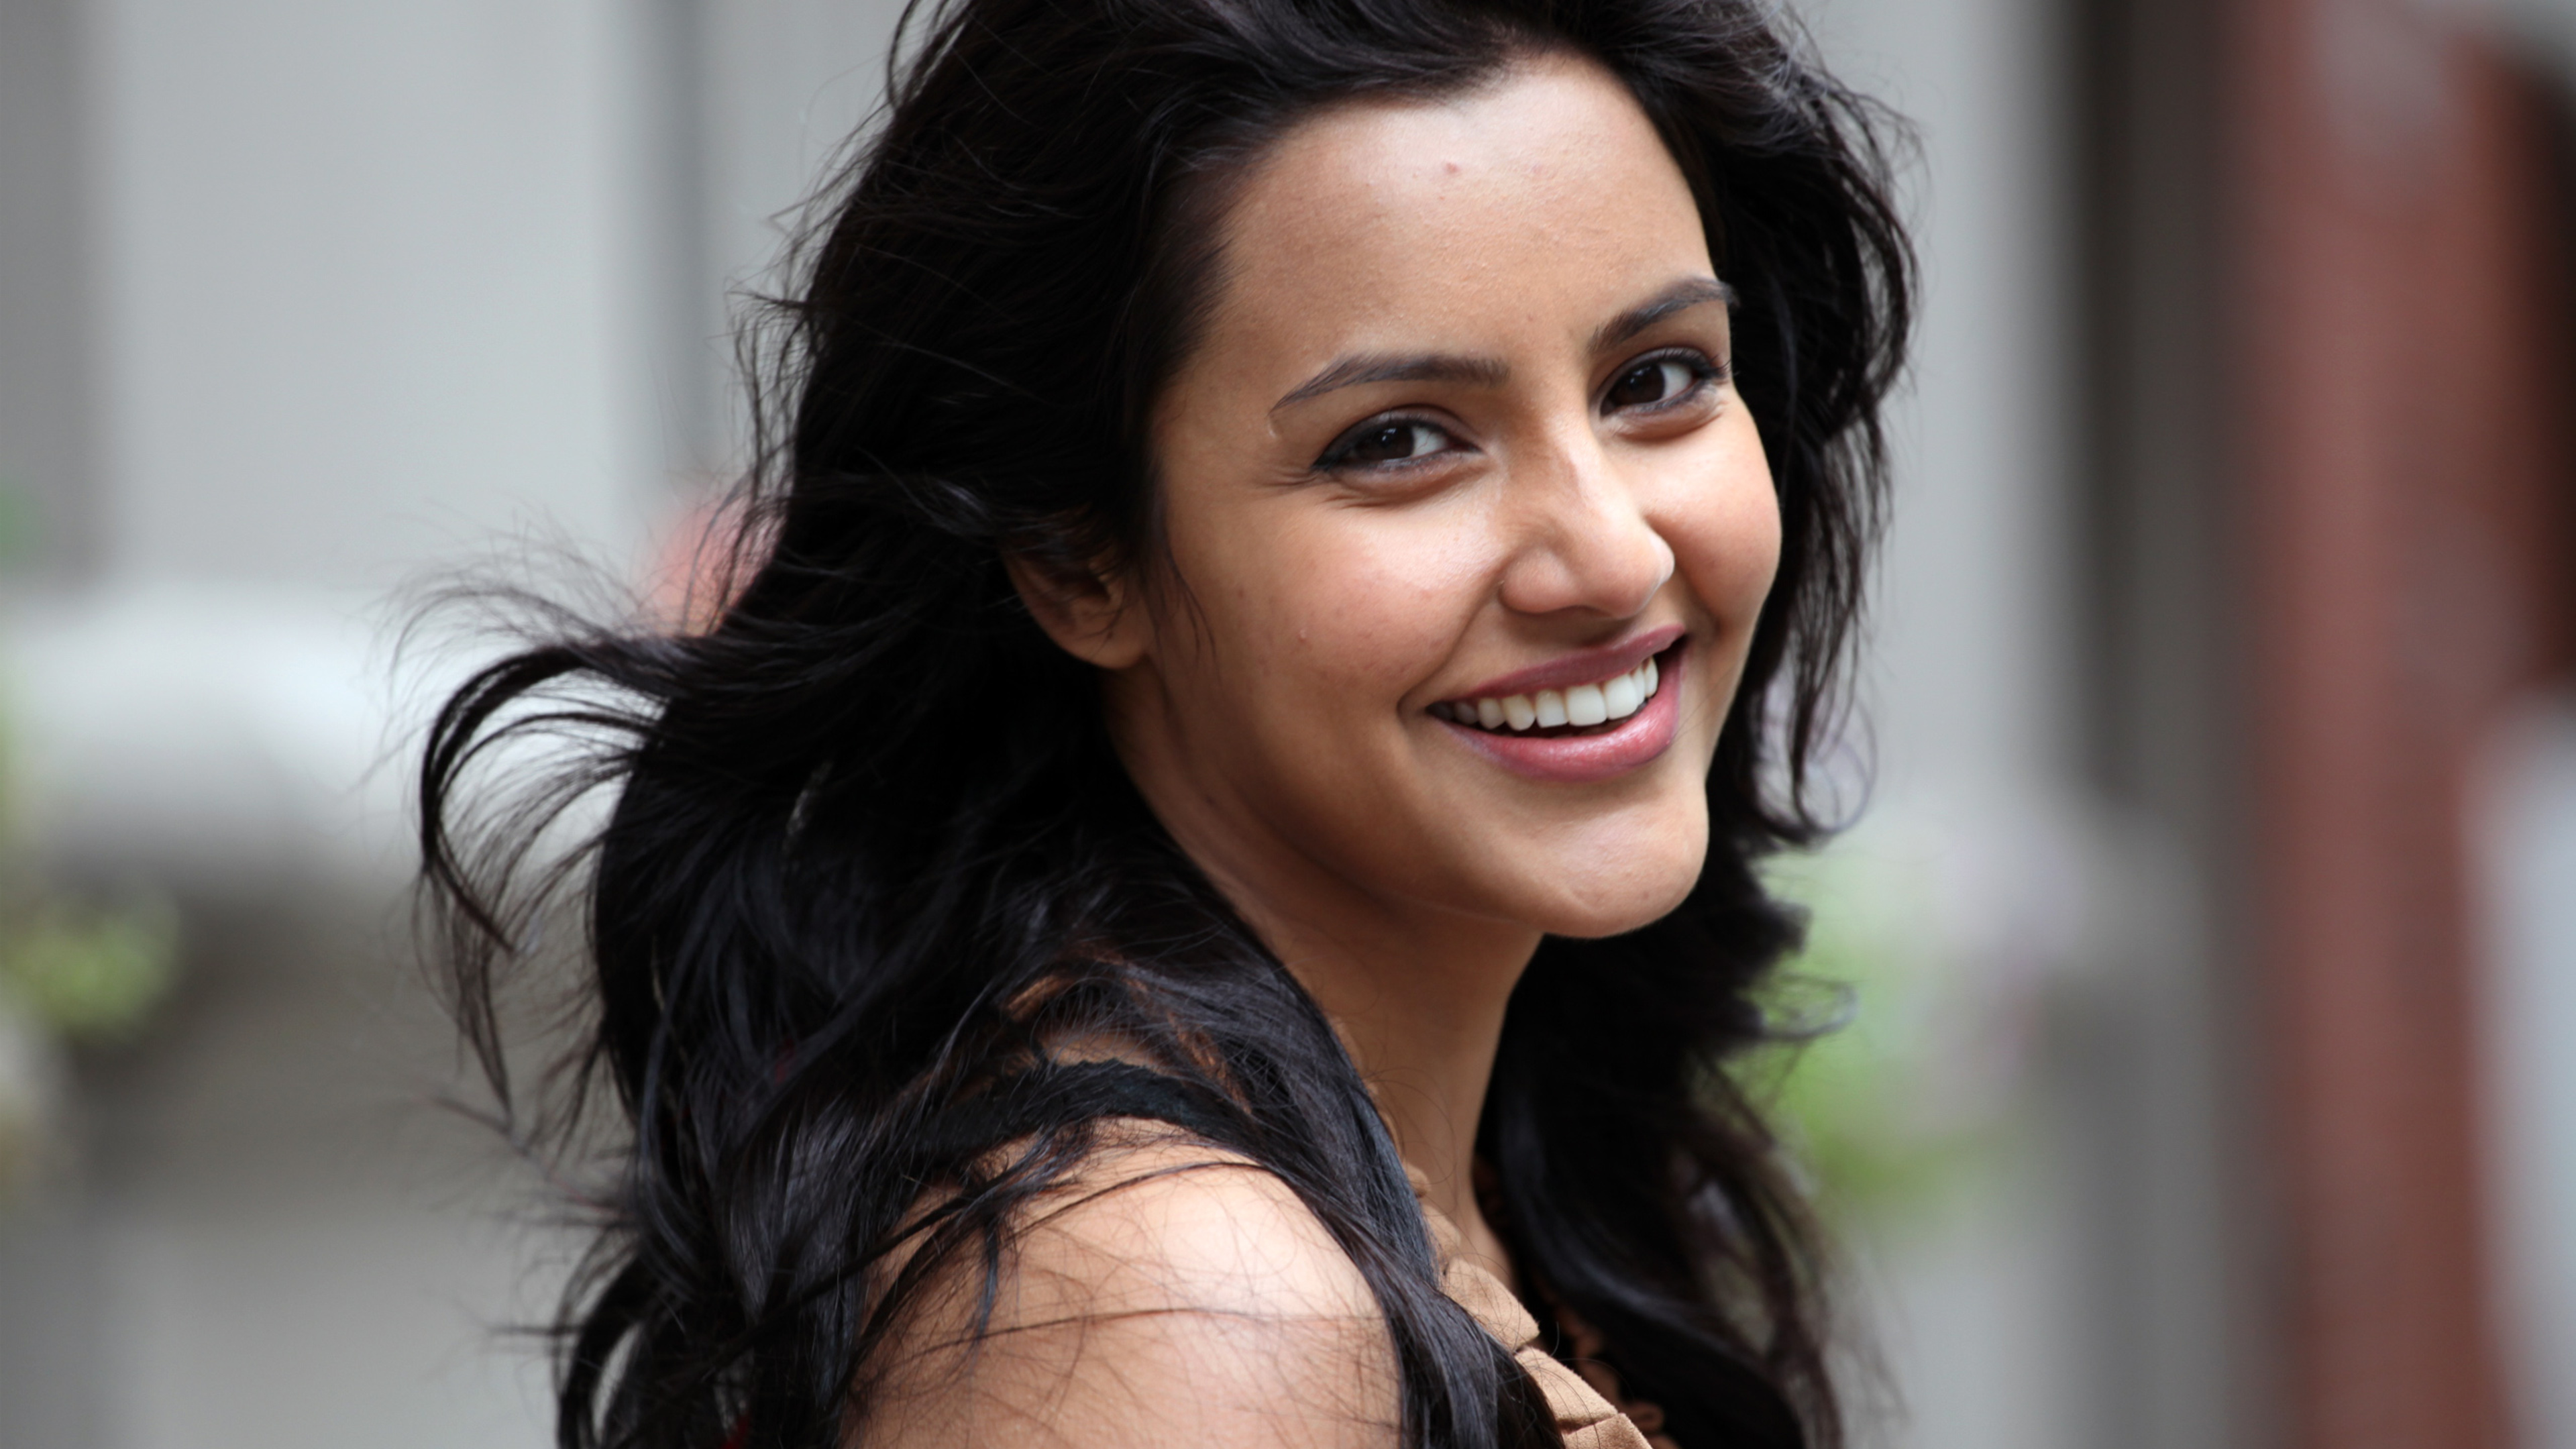 priya anand, hd indian celebrities, 4k wallpapers, images